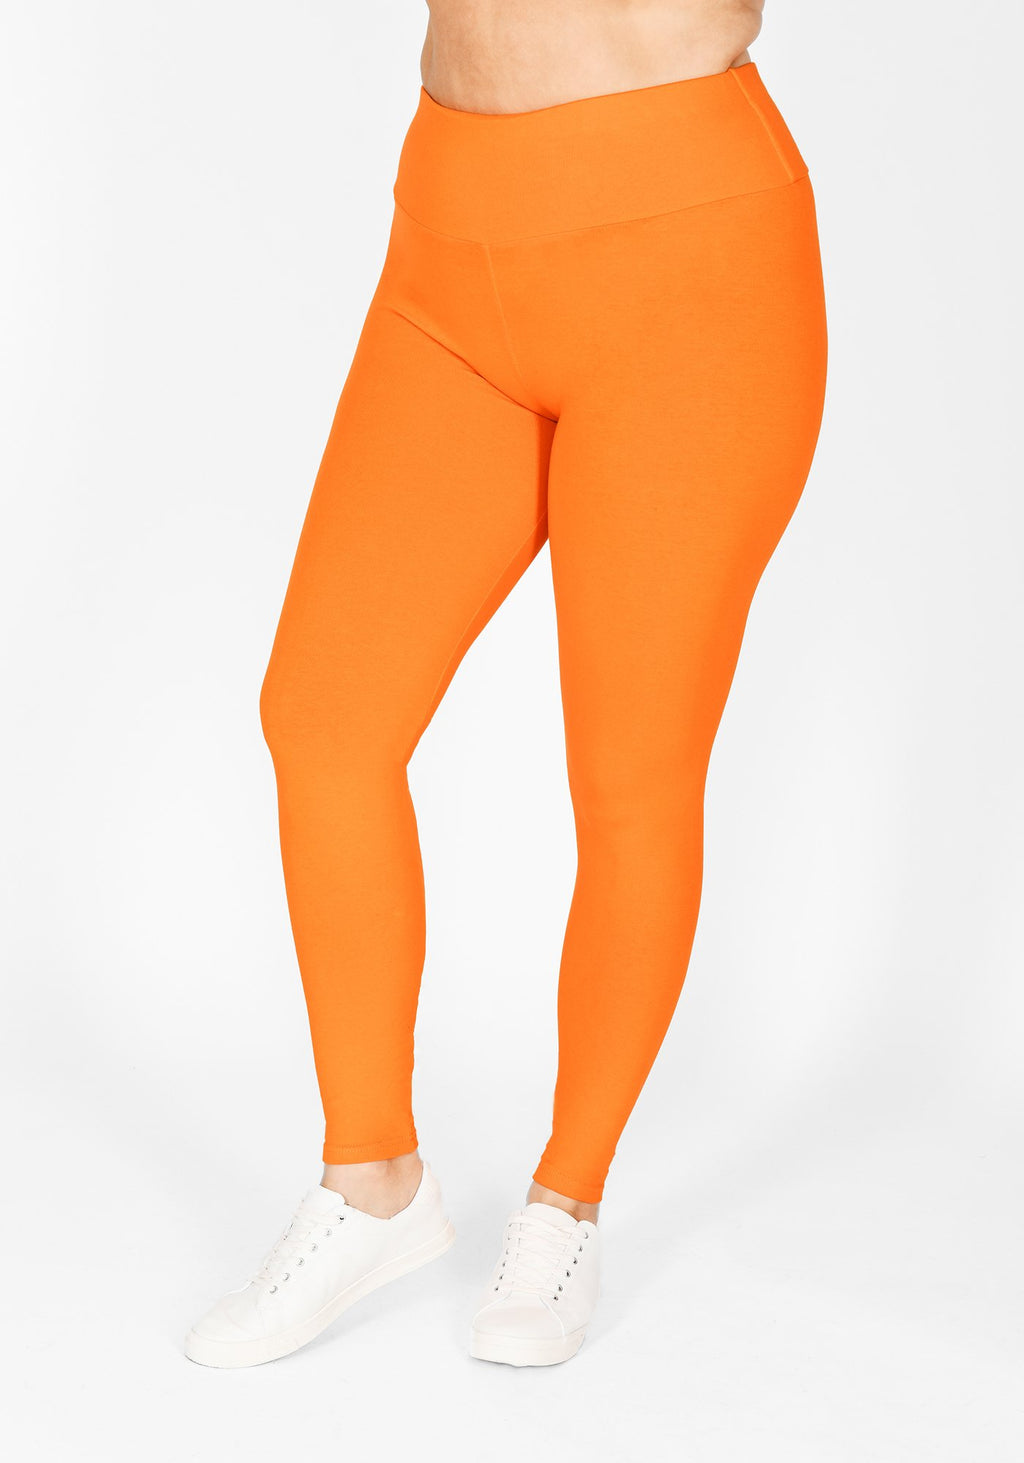 Plus Size Tiger Orange High Waisted Leggings 1